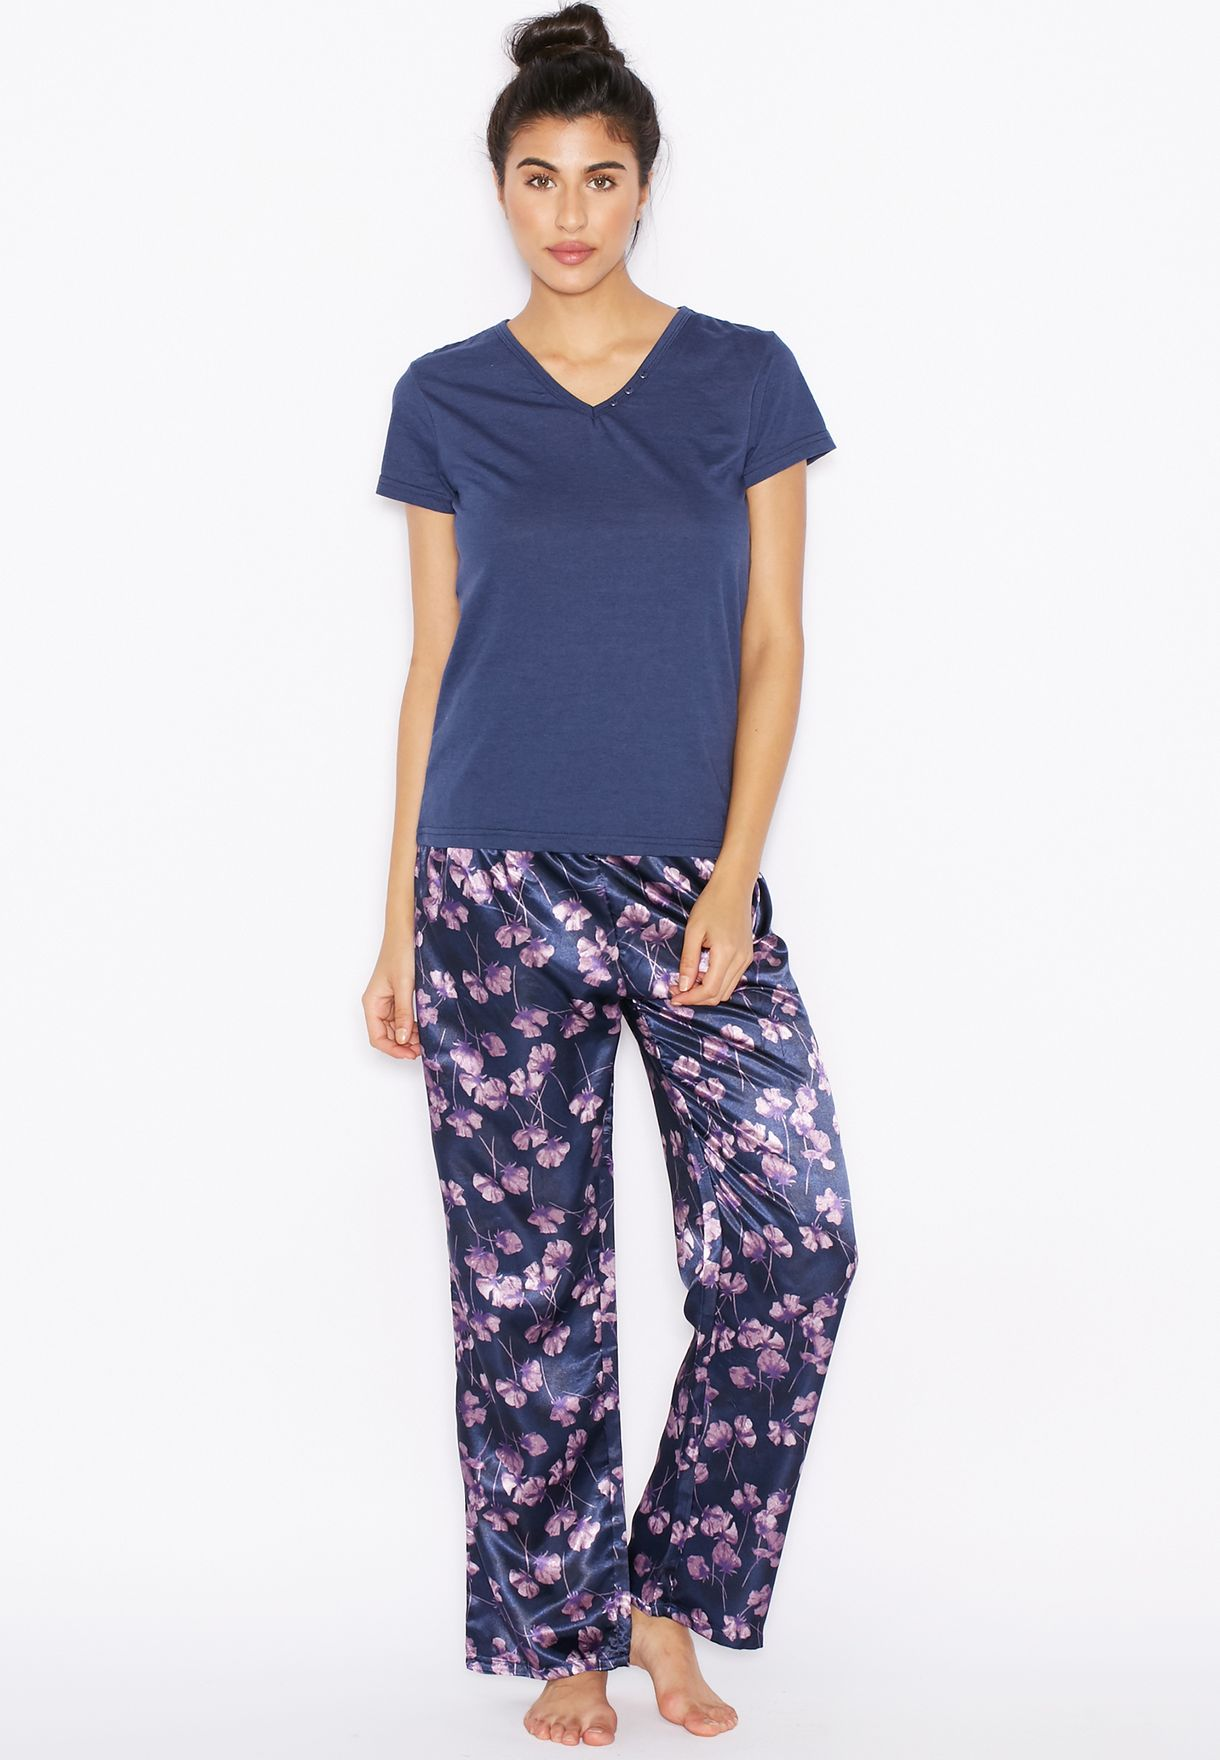 83772f88f9e00 Shop Outdoor navy Printed Pyjama Set for Women in Bahrain - OU616AT30HGV